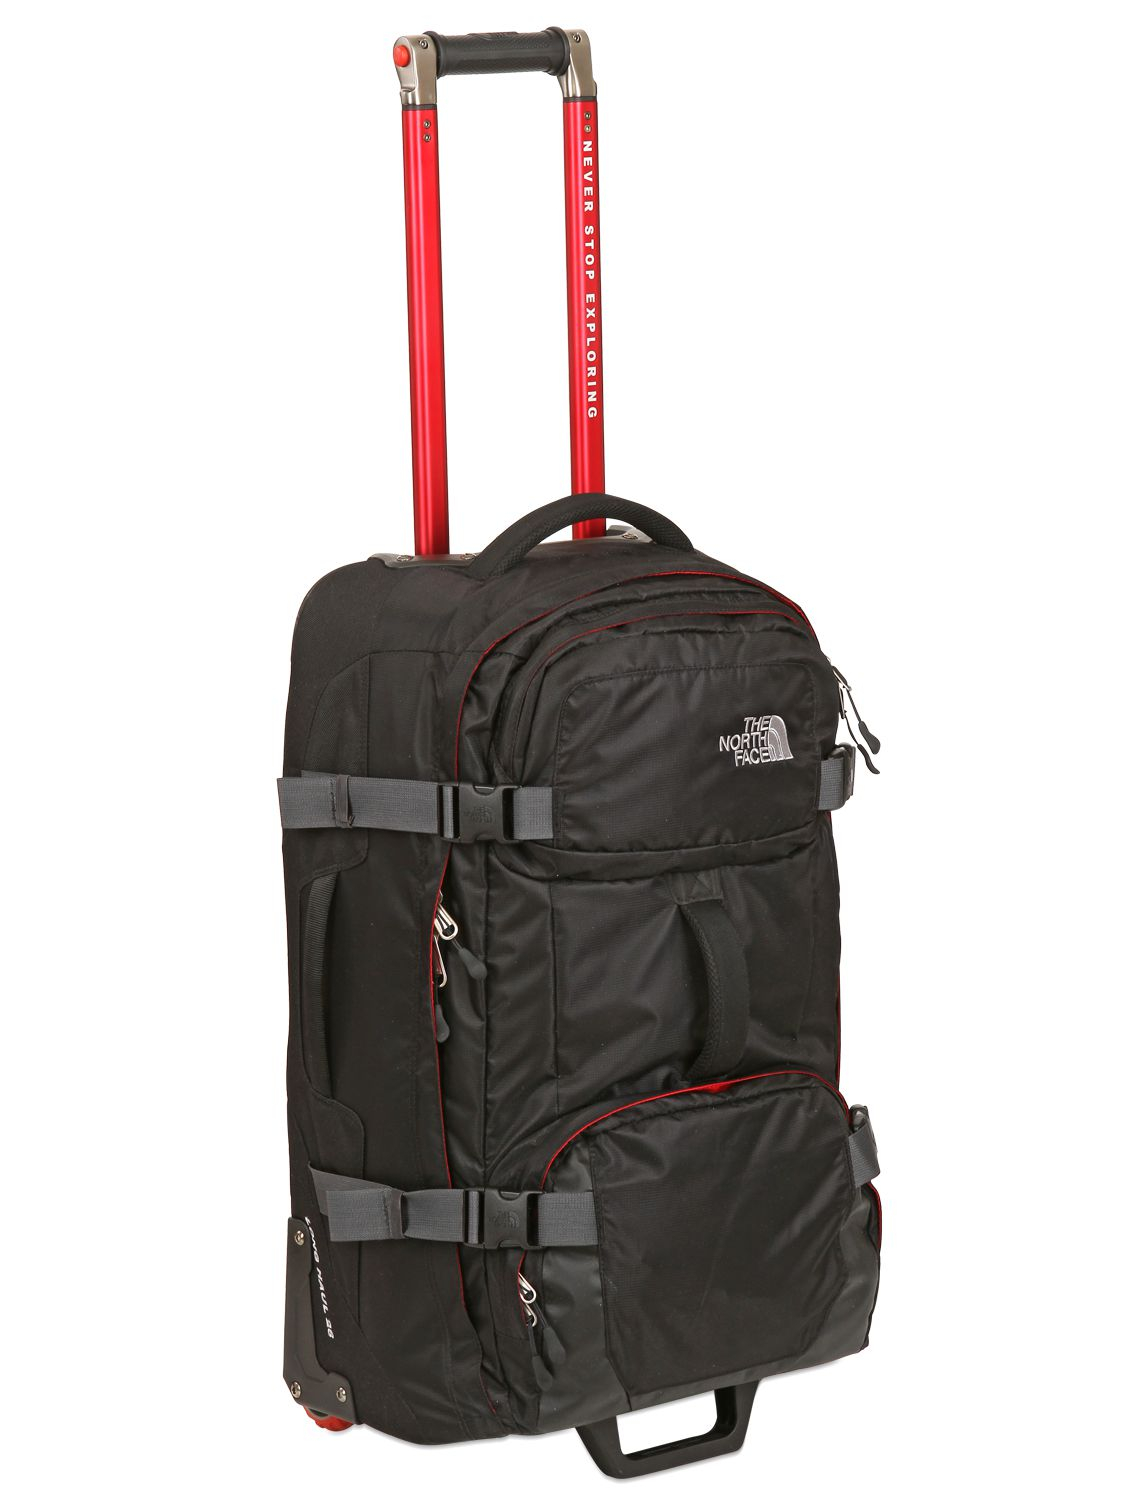 lyst the north face 26 longhaul recycled nylon trolley in black for men. Black Bedroom Furniture Sets. Home Design Ideas